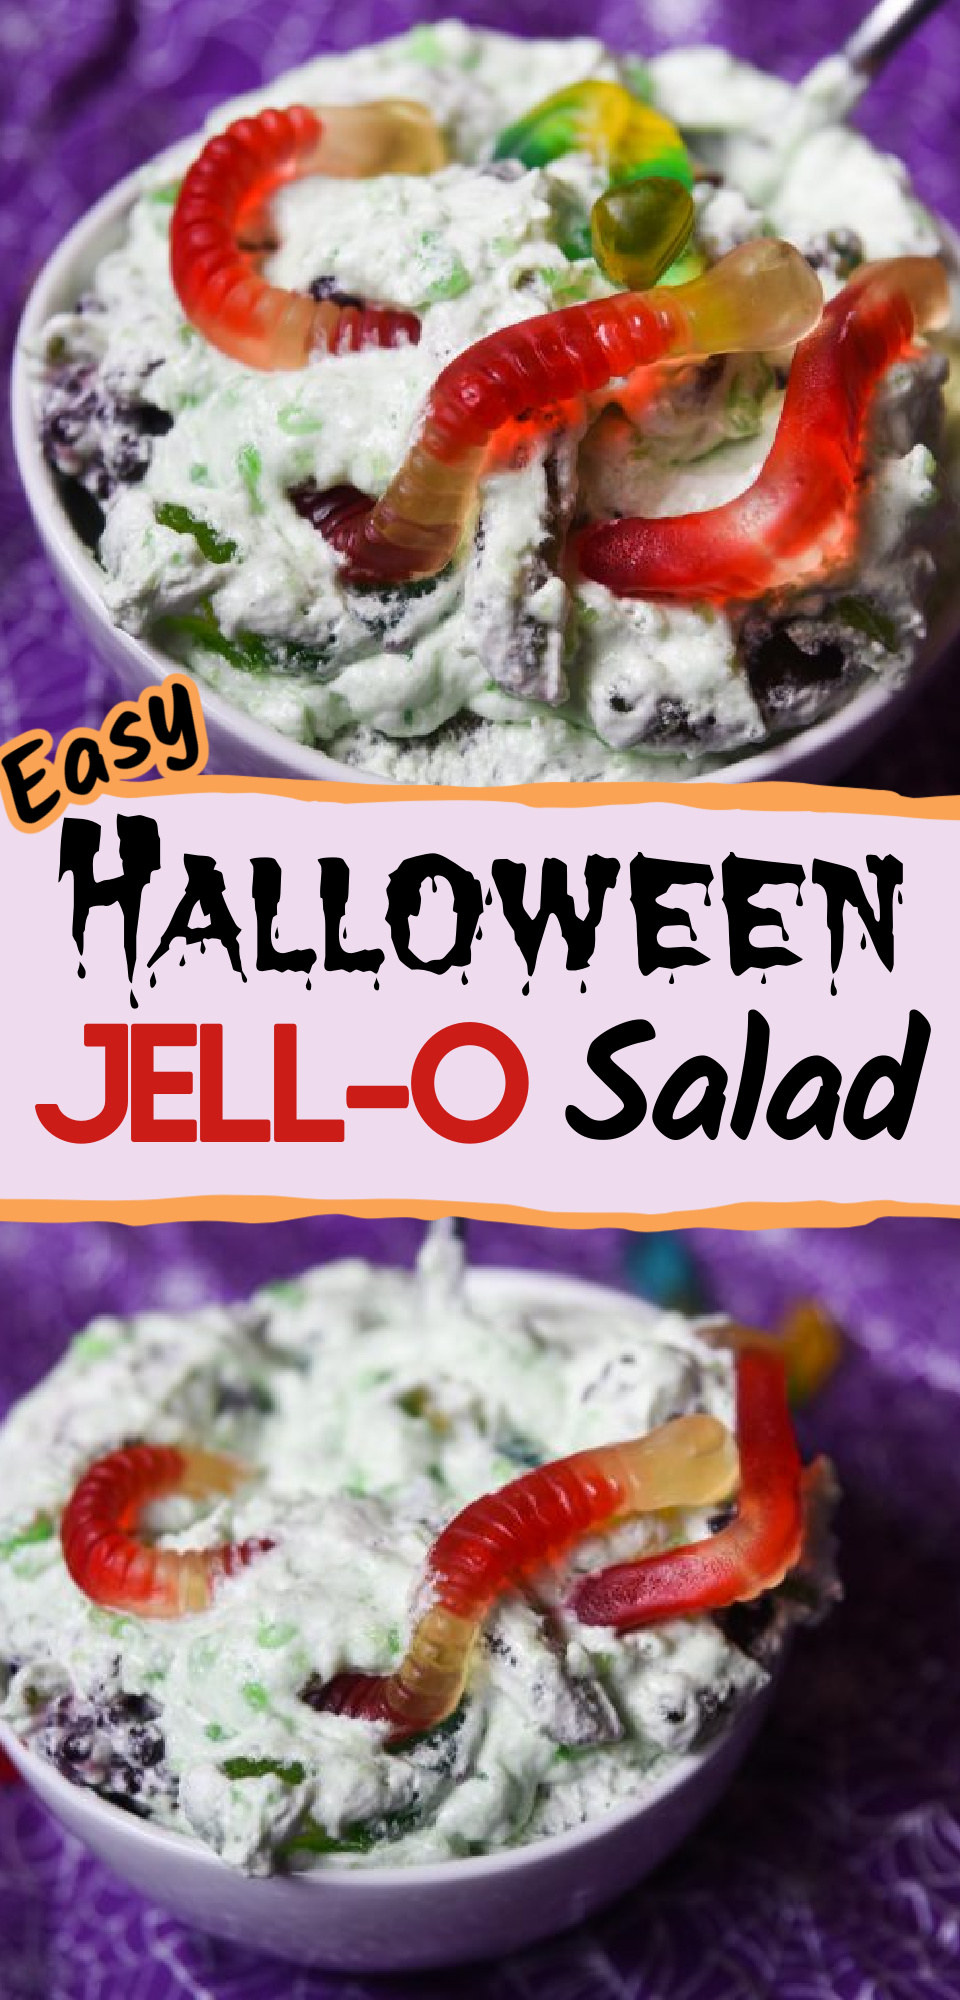 This chilled Halloween Jello salad is an excellent way to bring texture and sweetness to any meal or party smattering. This recipe calls for fun gummy worms and blackberries that your kids will love. Make Halloween even more fun this year! via @simplysidedishes89